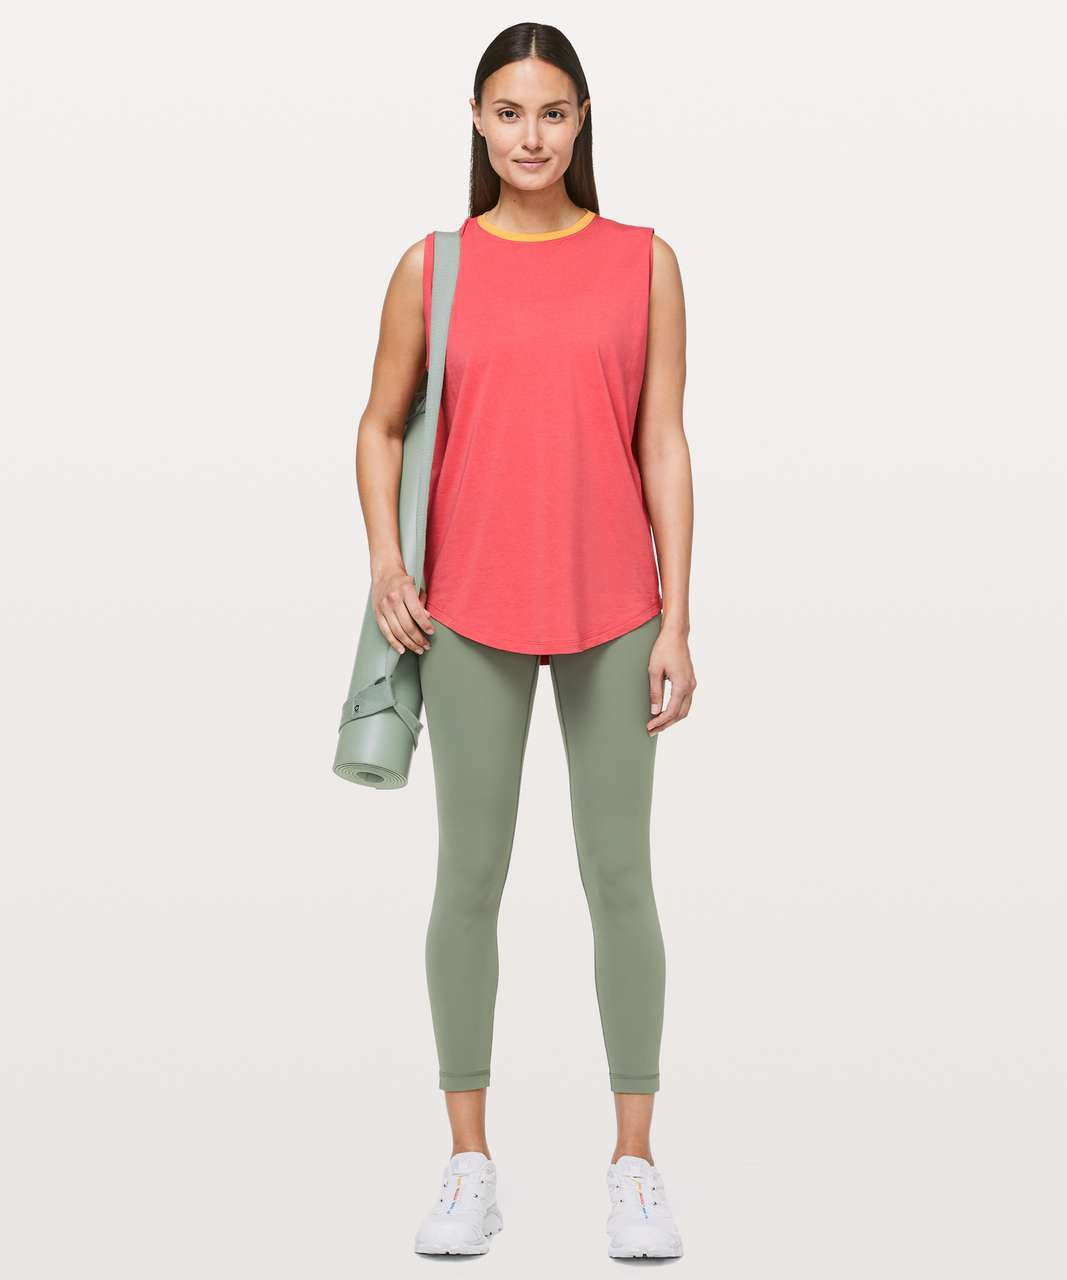 Lululemon Brunswick Muscle Tank - Poppy Coral / Heathered Honey Lemon